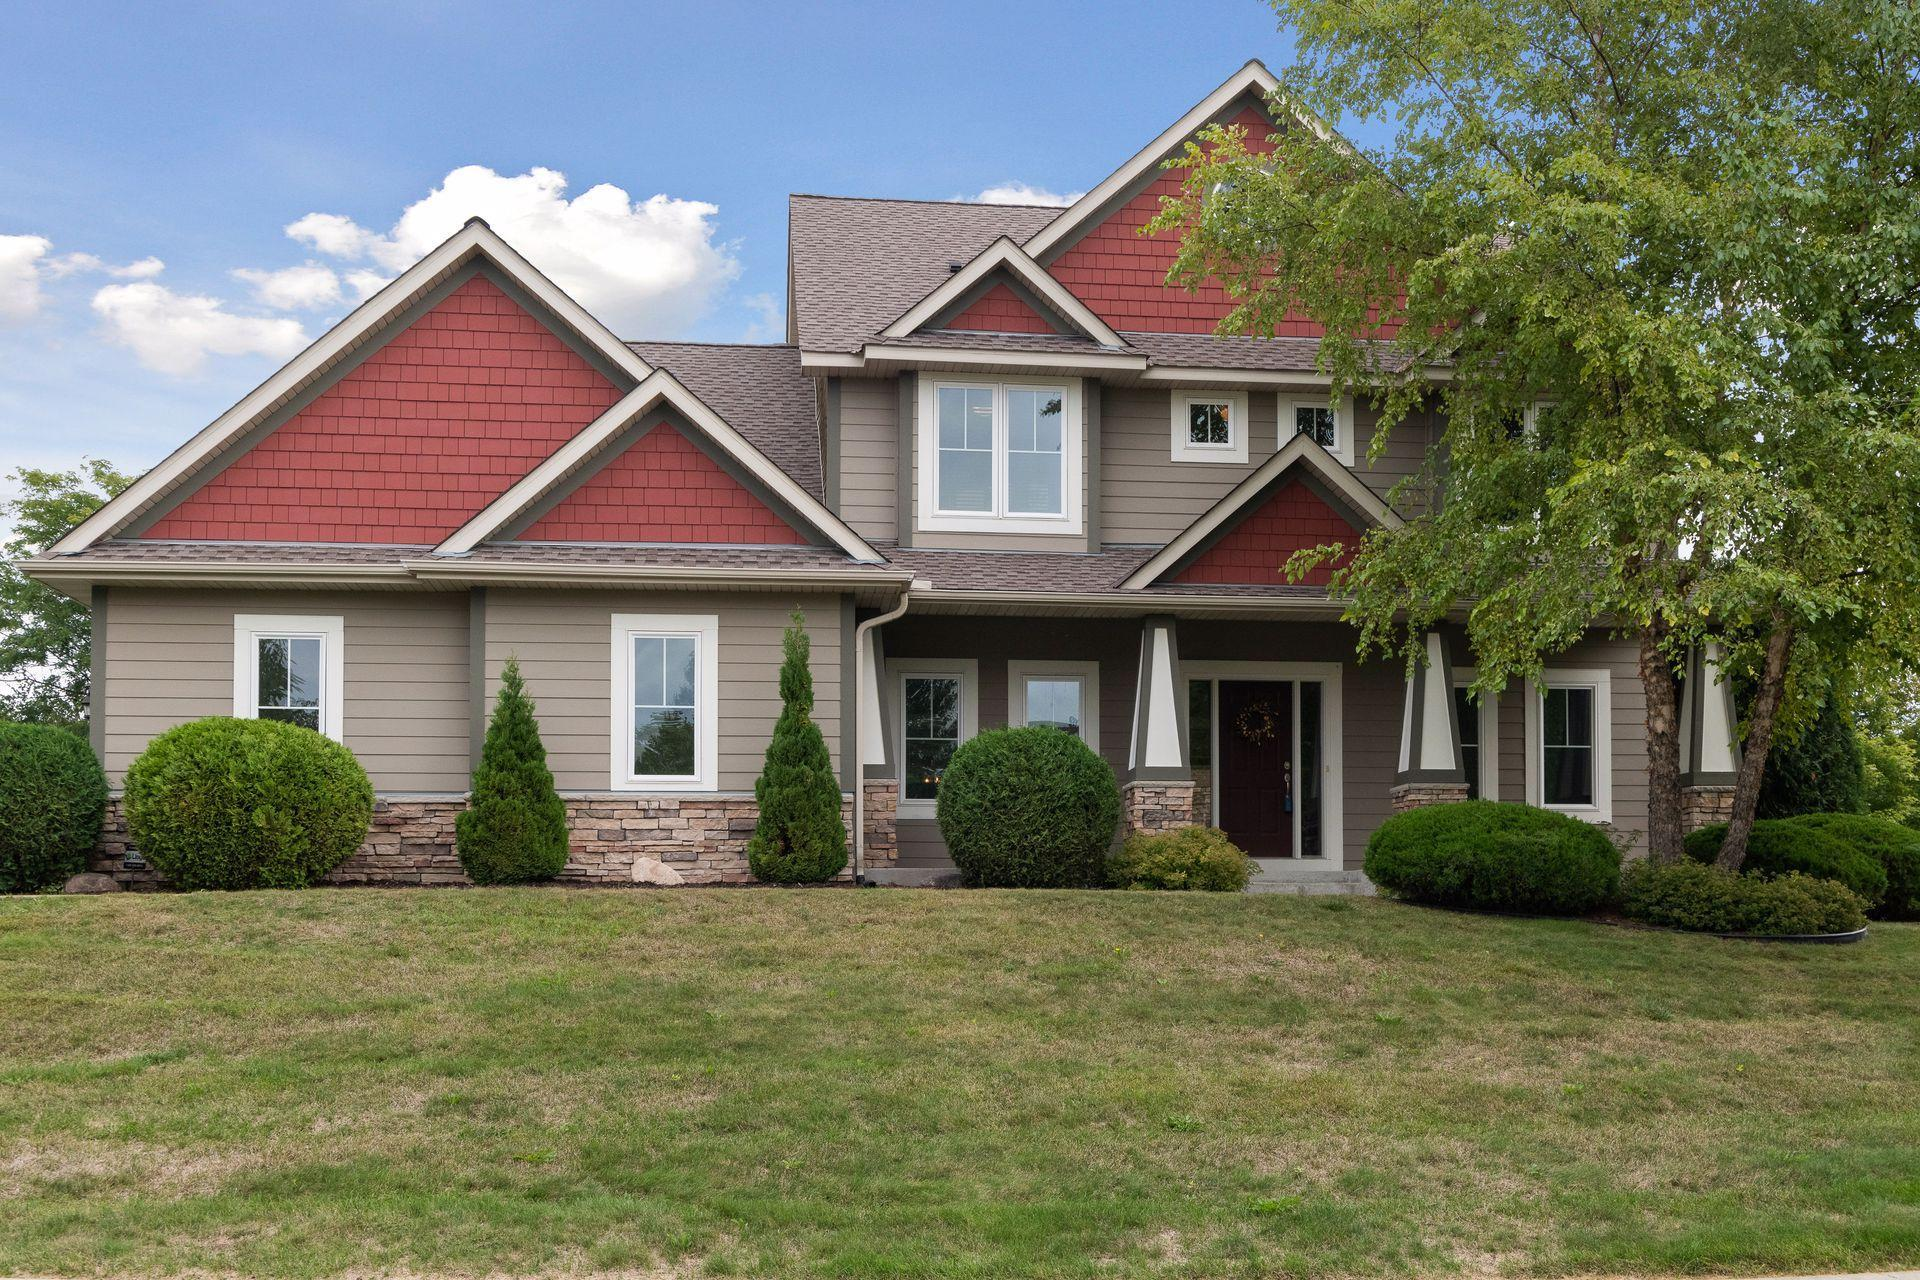 729 Applewood Circle Property Photo - Victoria, MN real estate listing